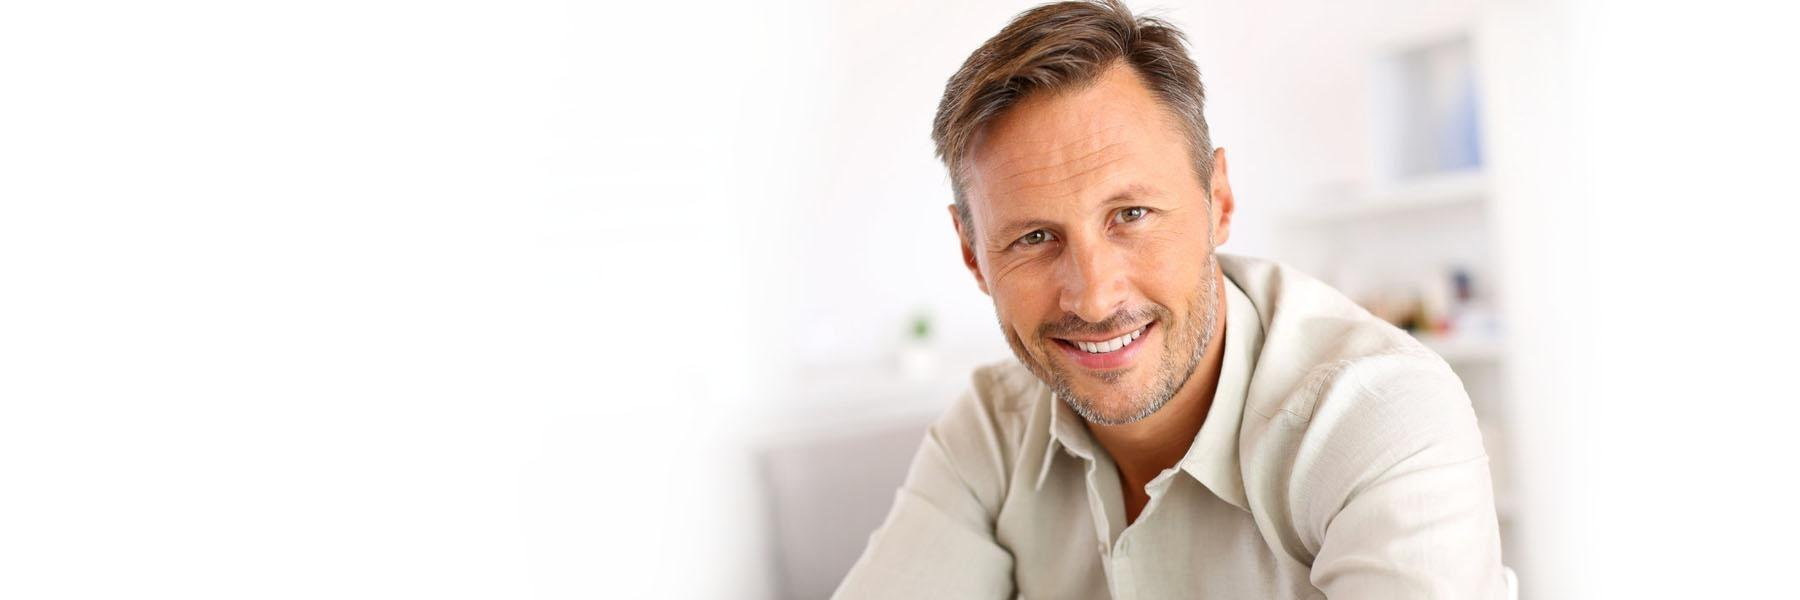 Dental Implants in Vallejo, CA banner image